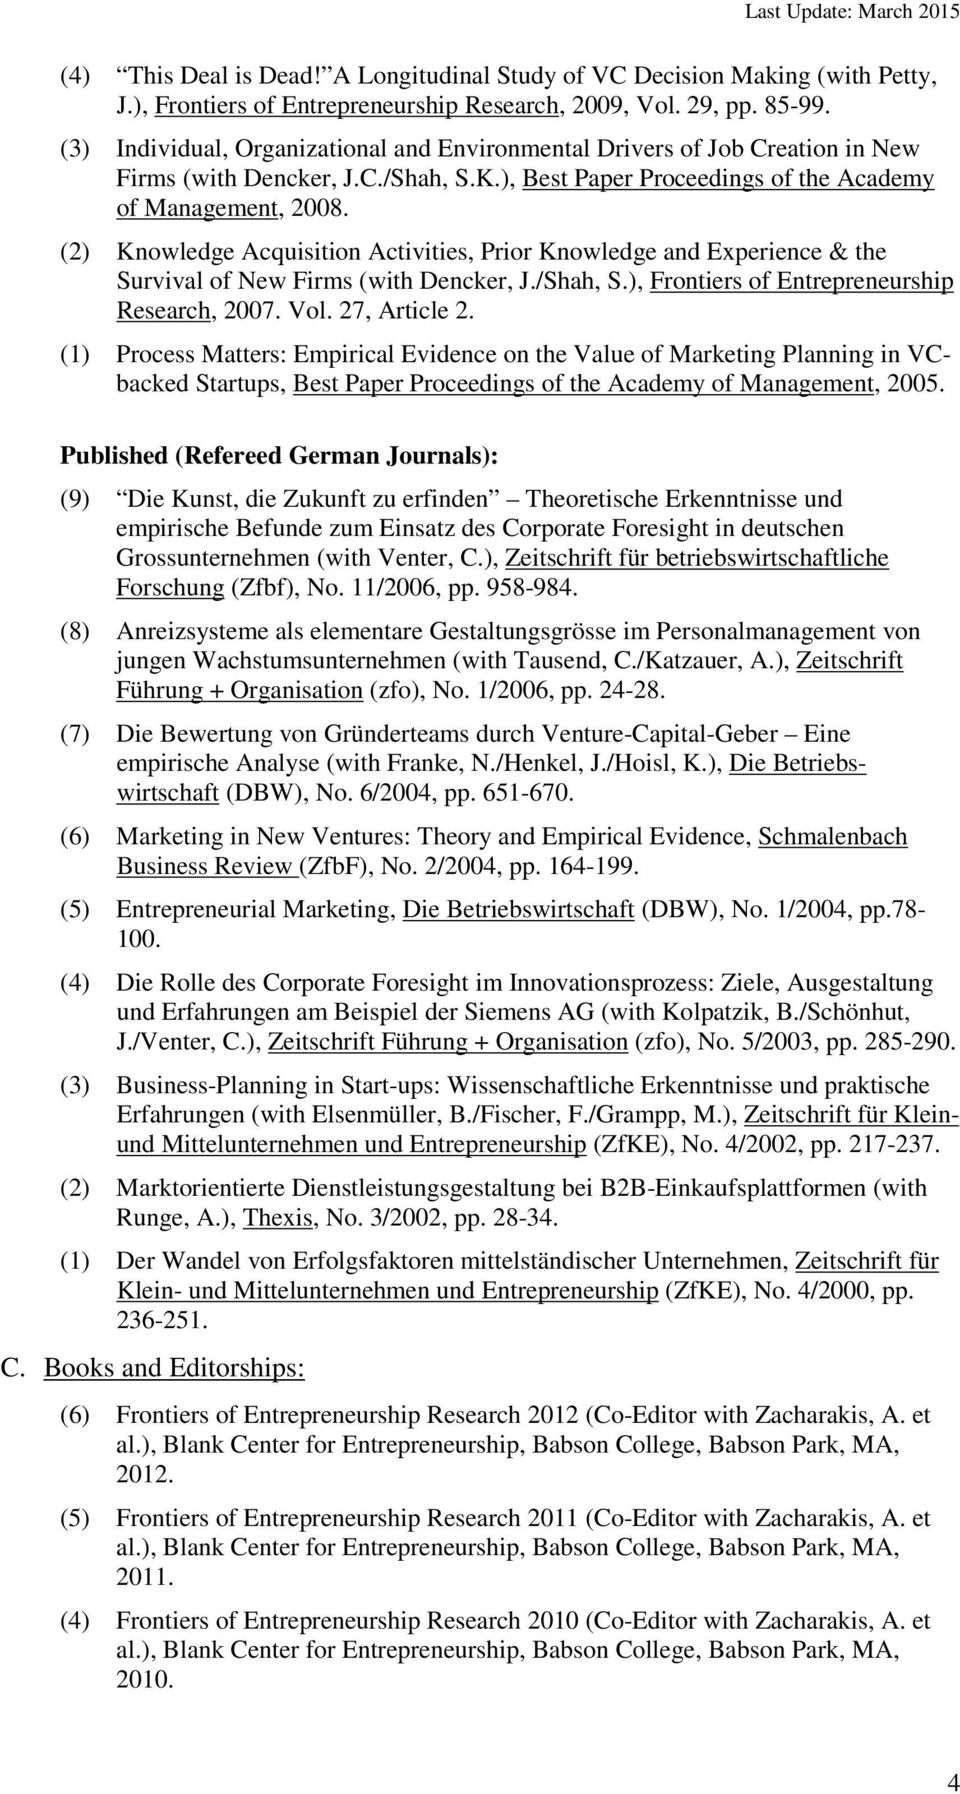 (2) Knowledge Acquisition Activities, Prior Knowledge and Experience & the Survival of New Firms (with Dencker, J./Shah, S.), Frontiers of Entrepreneurship Research, 2007. Vol. 27, Article 2.